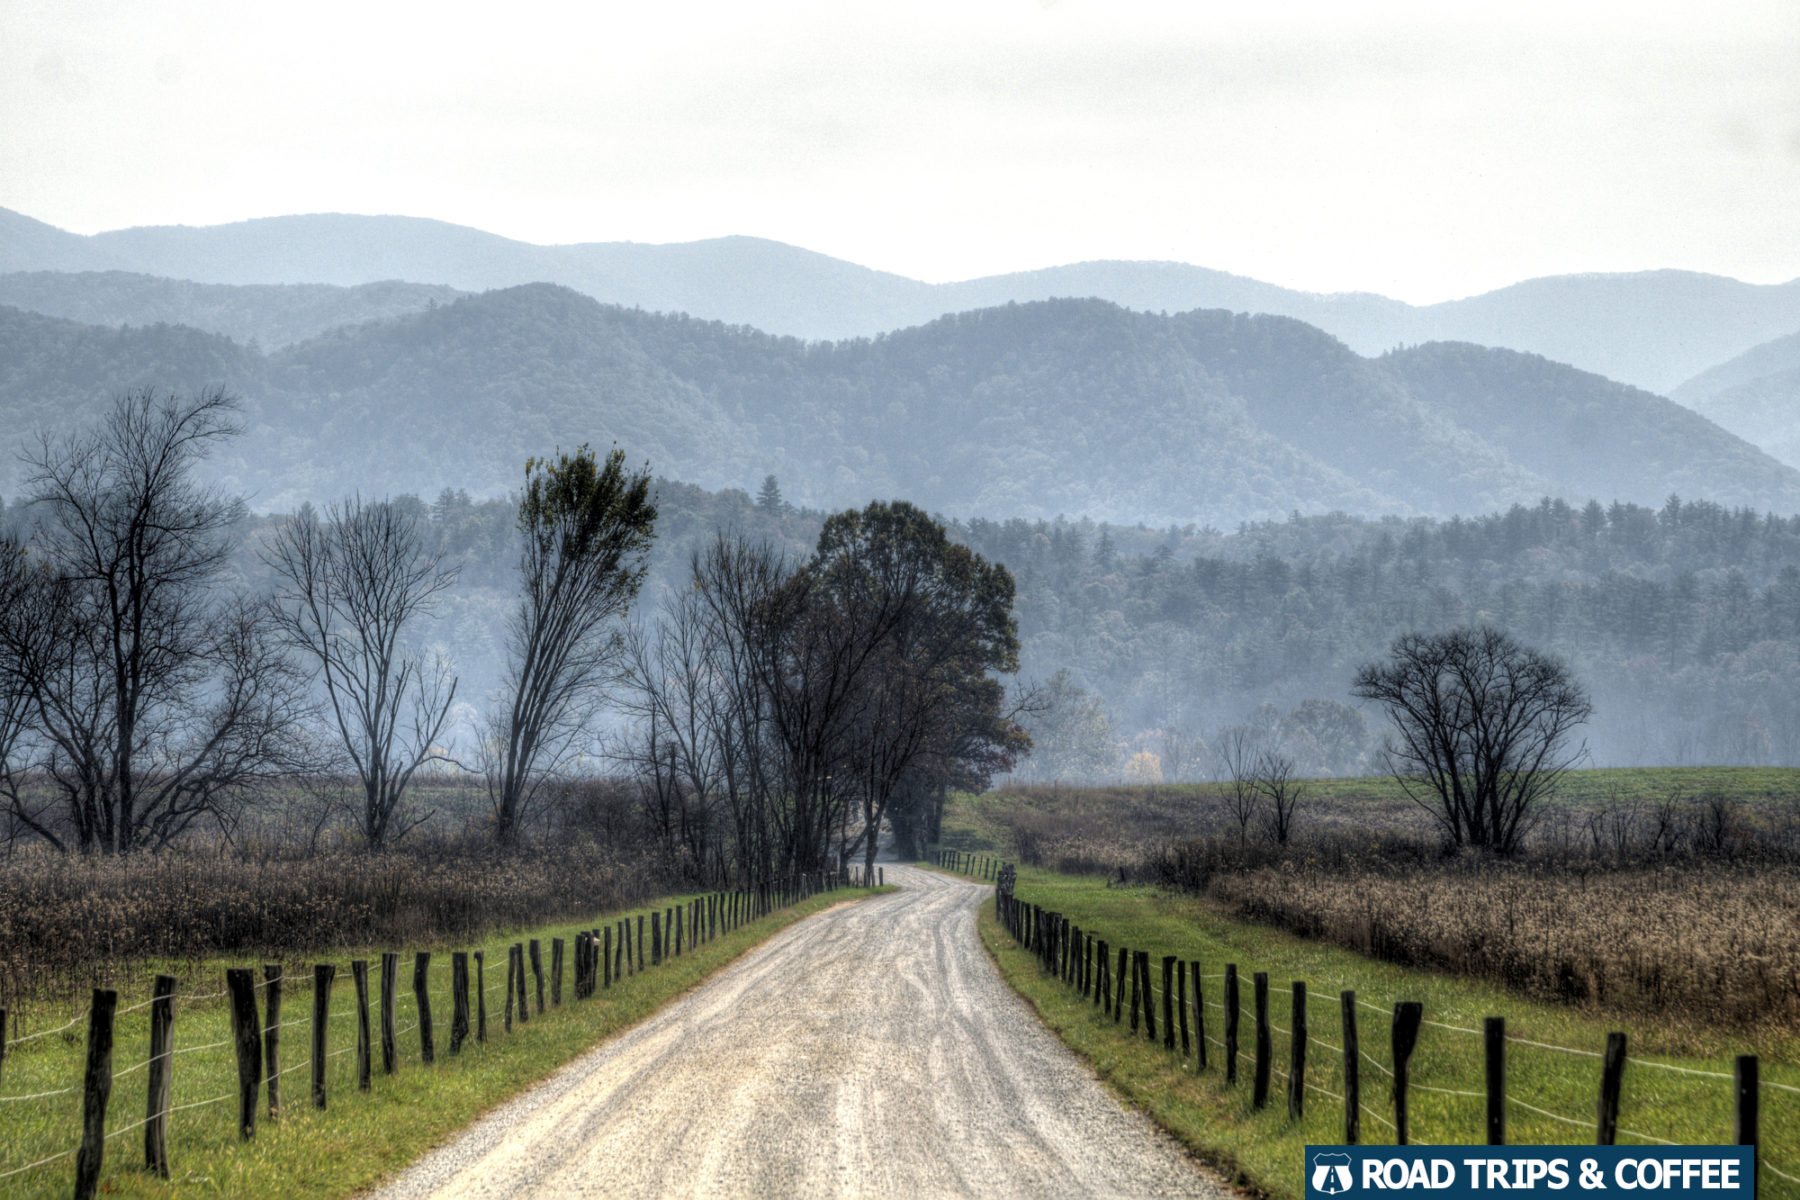 A wide gravel road with a rustic fence on either side and mountains in the distance at Cades Cove in the Great Smoky Mountains National Park